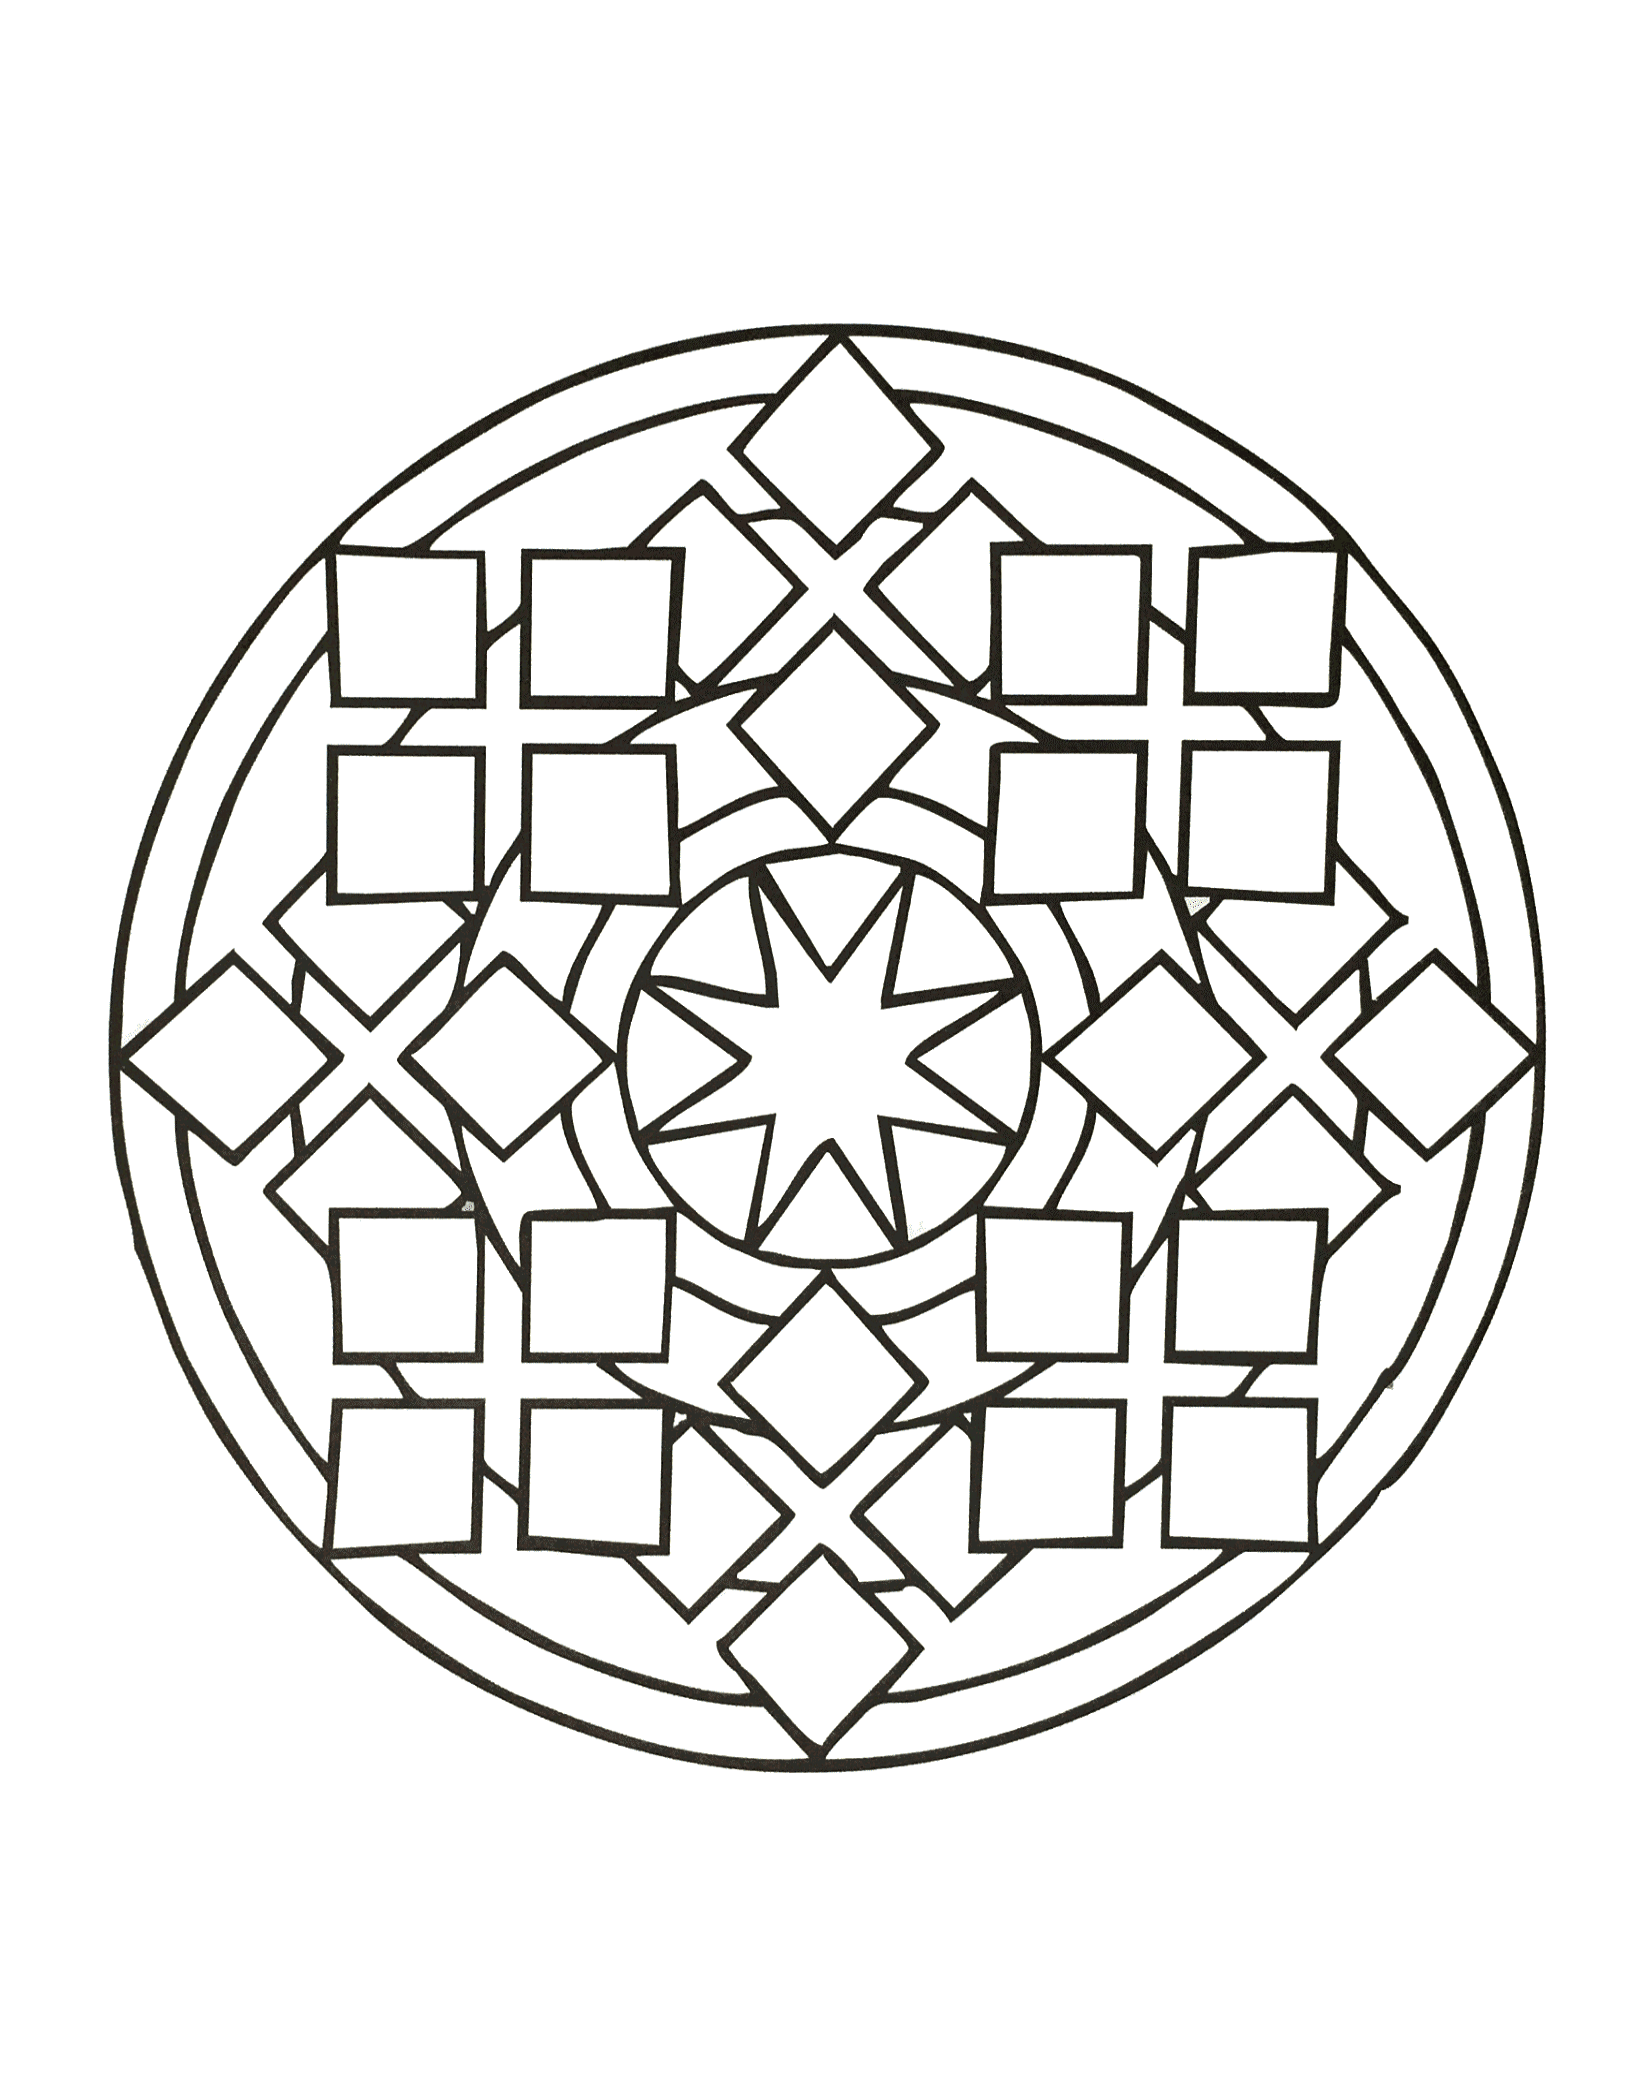 Simple Mandala with some squares - Easy Mandalas for kids ...